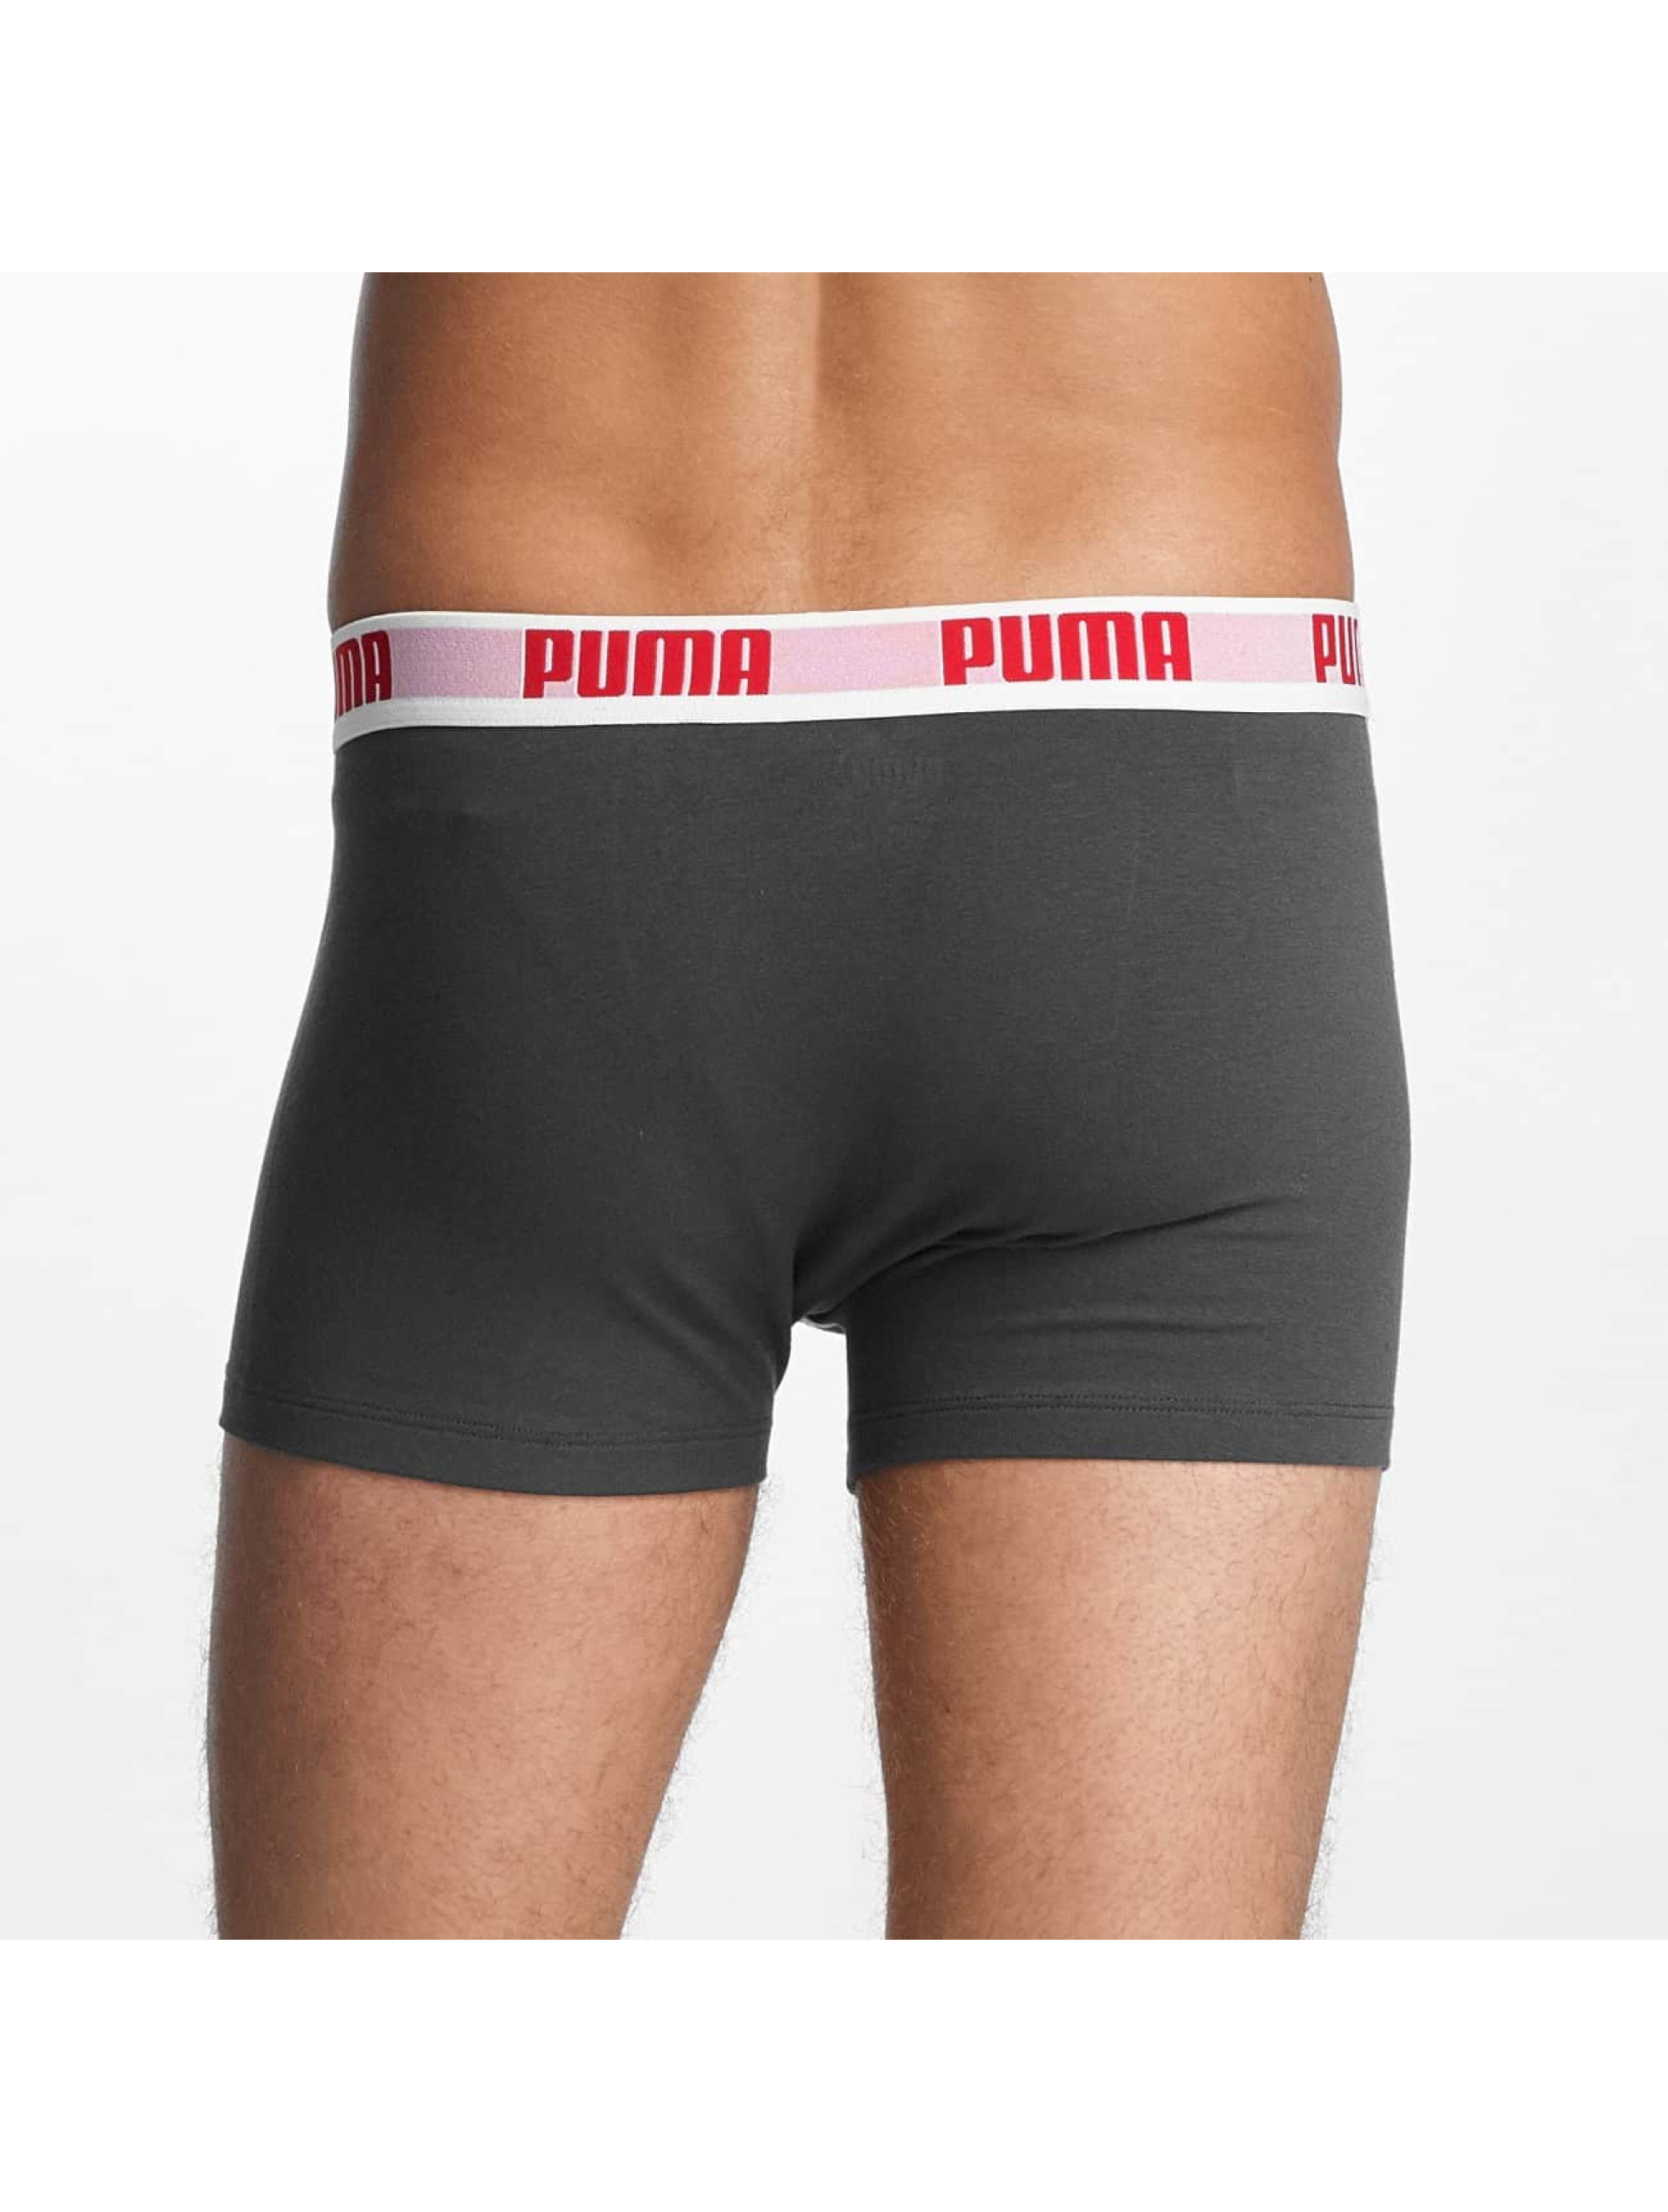 Puma Bokserit 2-Pack Basic Trunk sininen